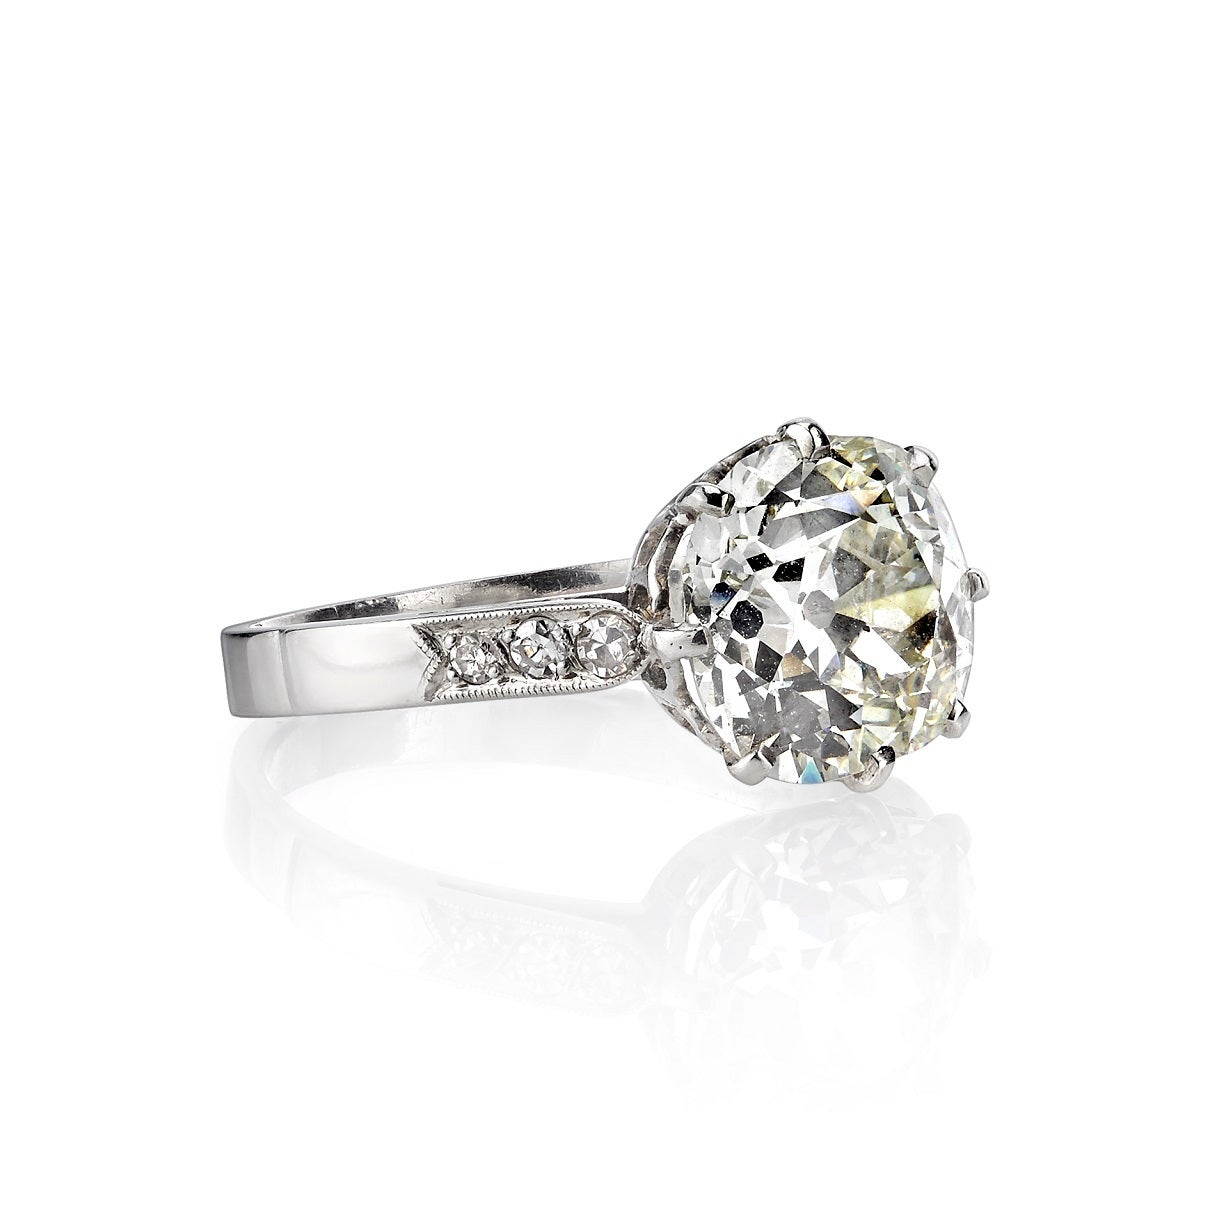 356 carat cushion cut diamond solitaire platinum